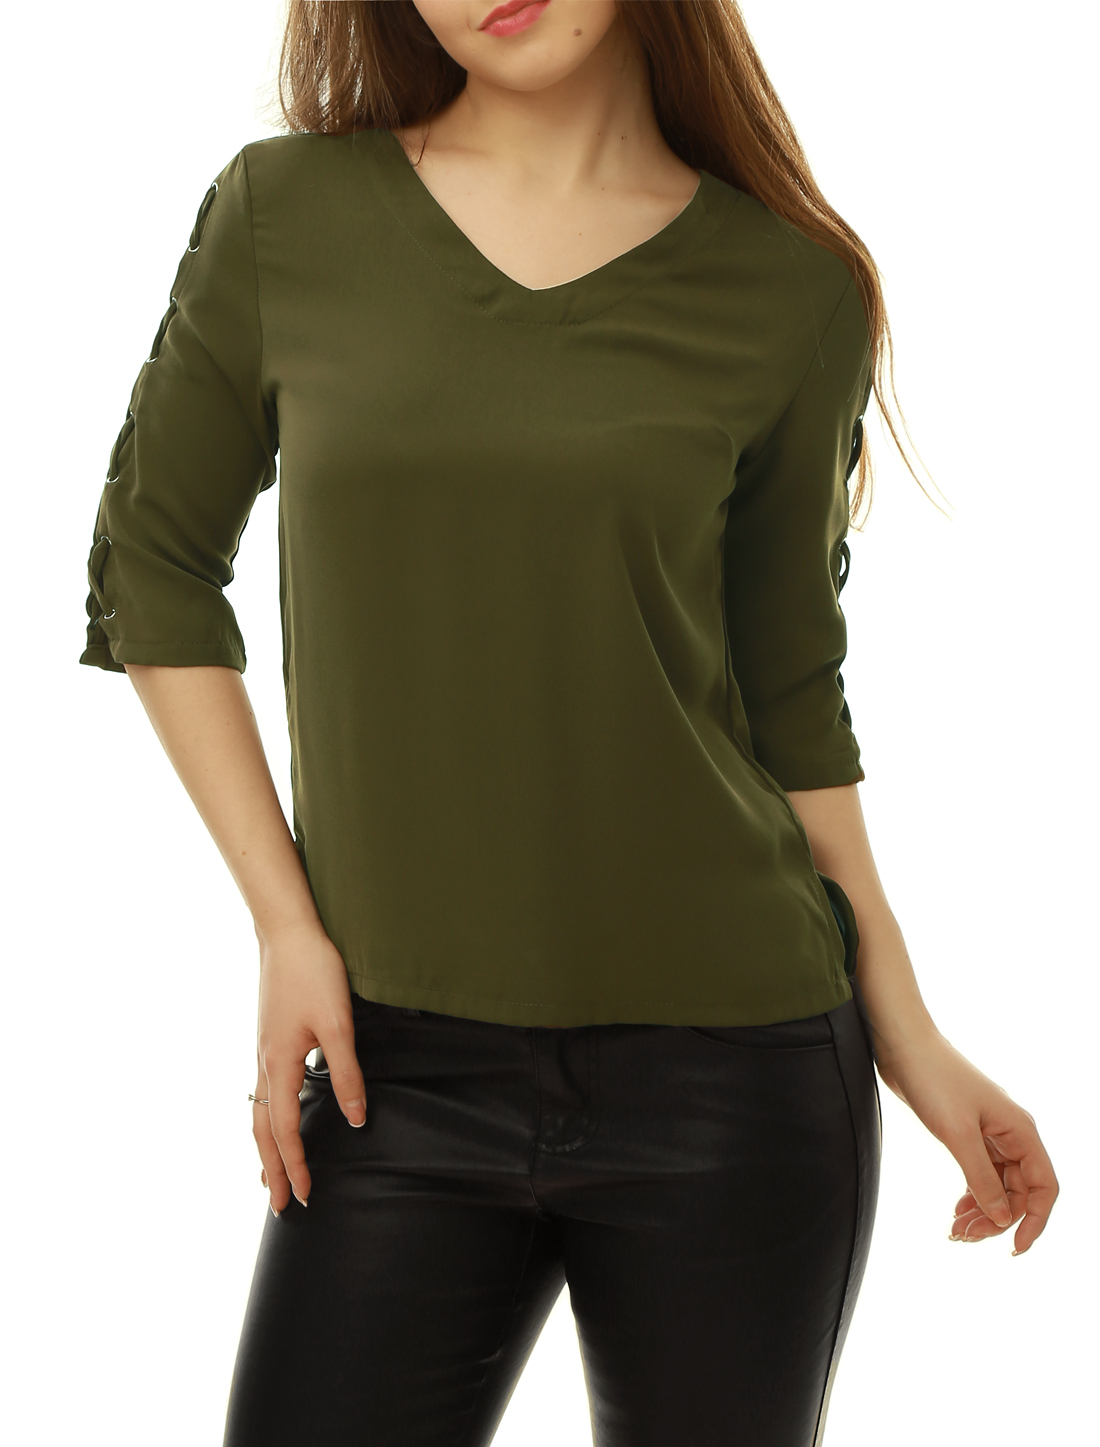 Women Three Quarter Lace Up Sleeves V Neck Side-Slit Top Green S